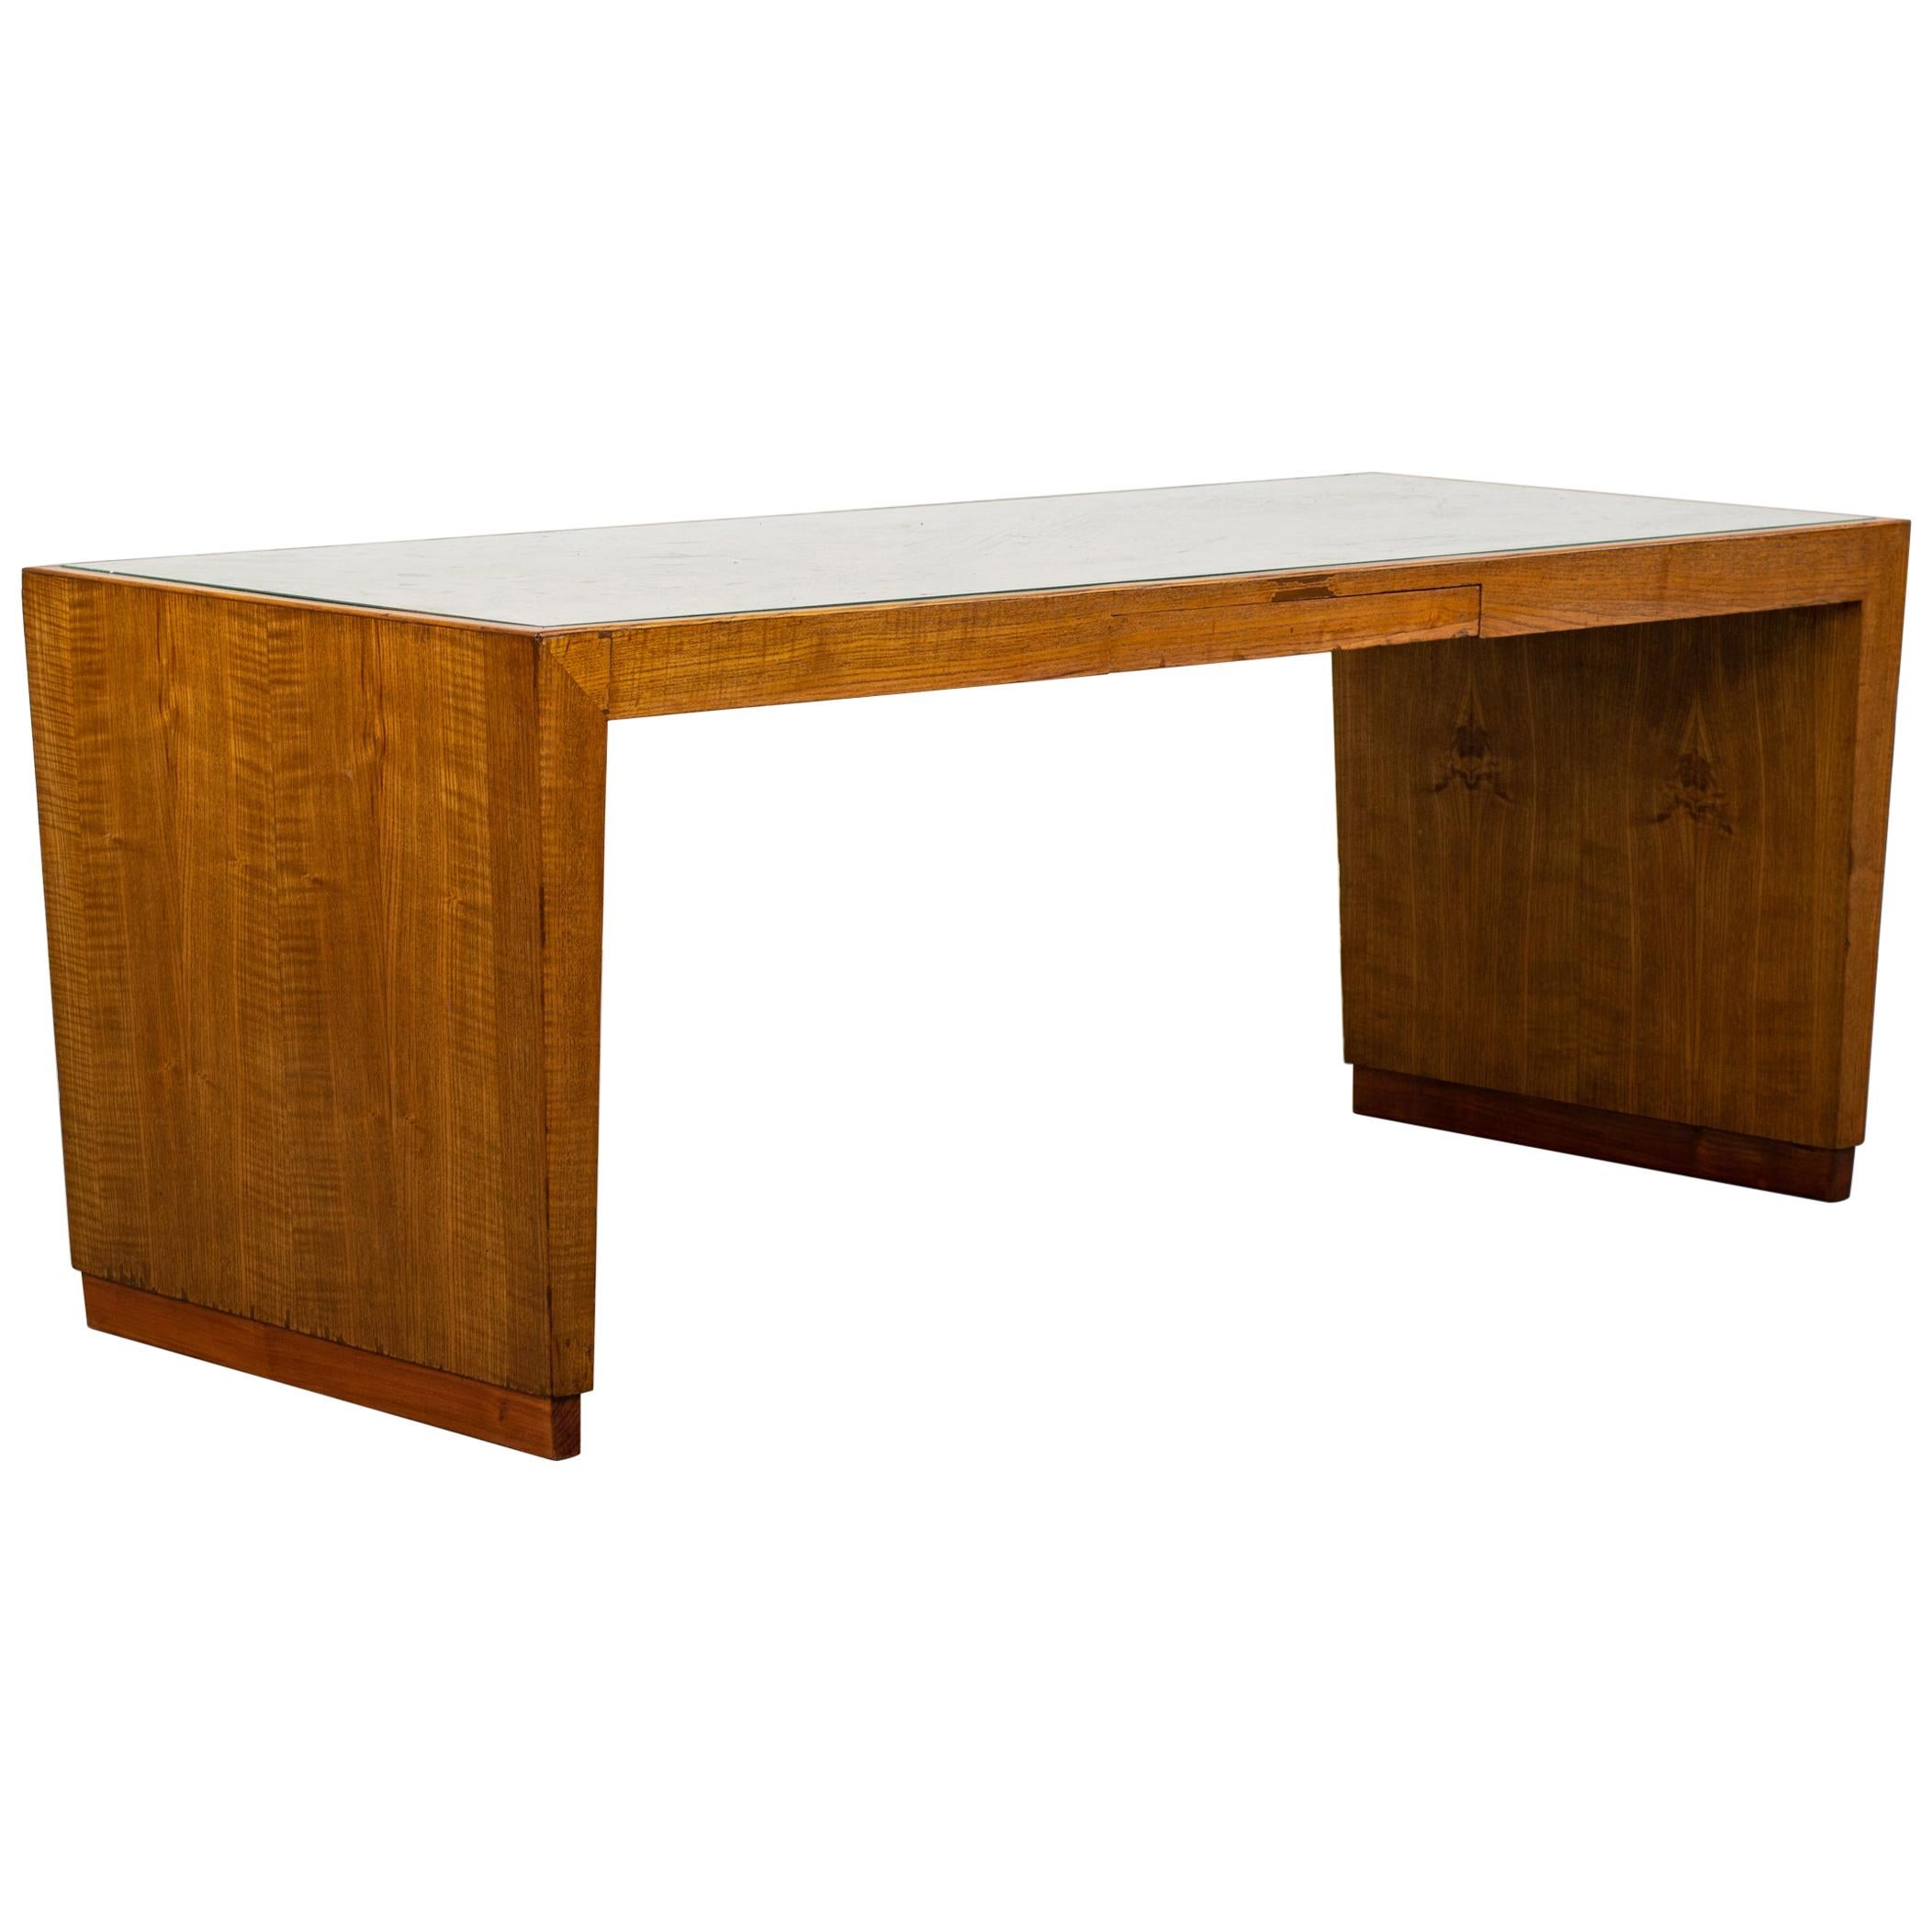 Gio Ponti Low Table in Wood and Glass for Banca Nazionale del Lavoro, 1950